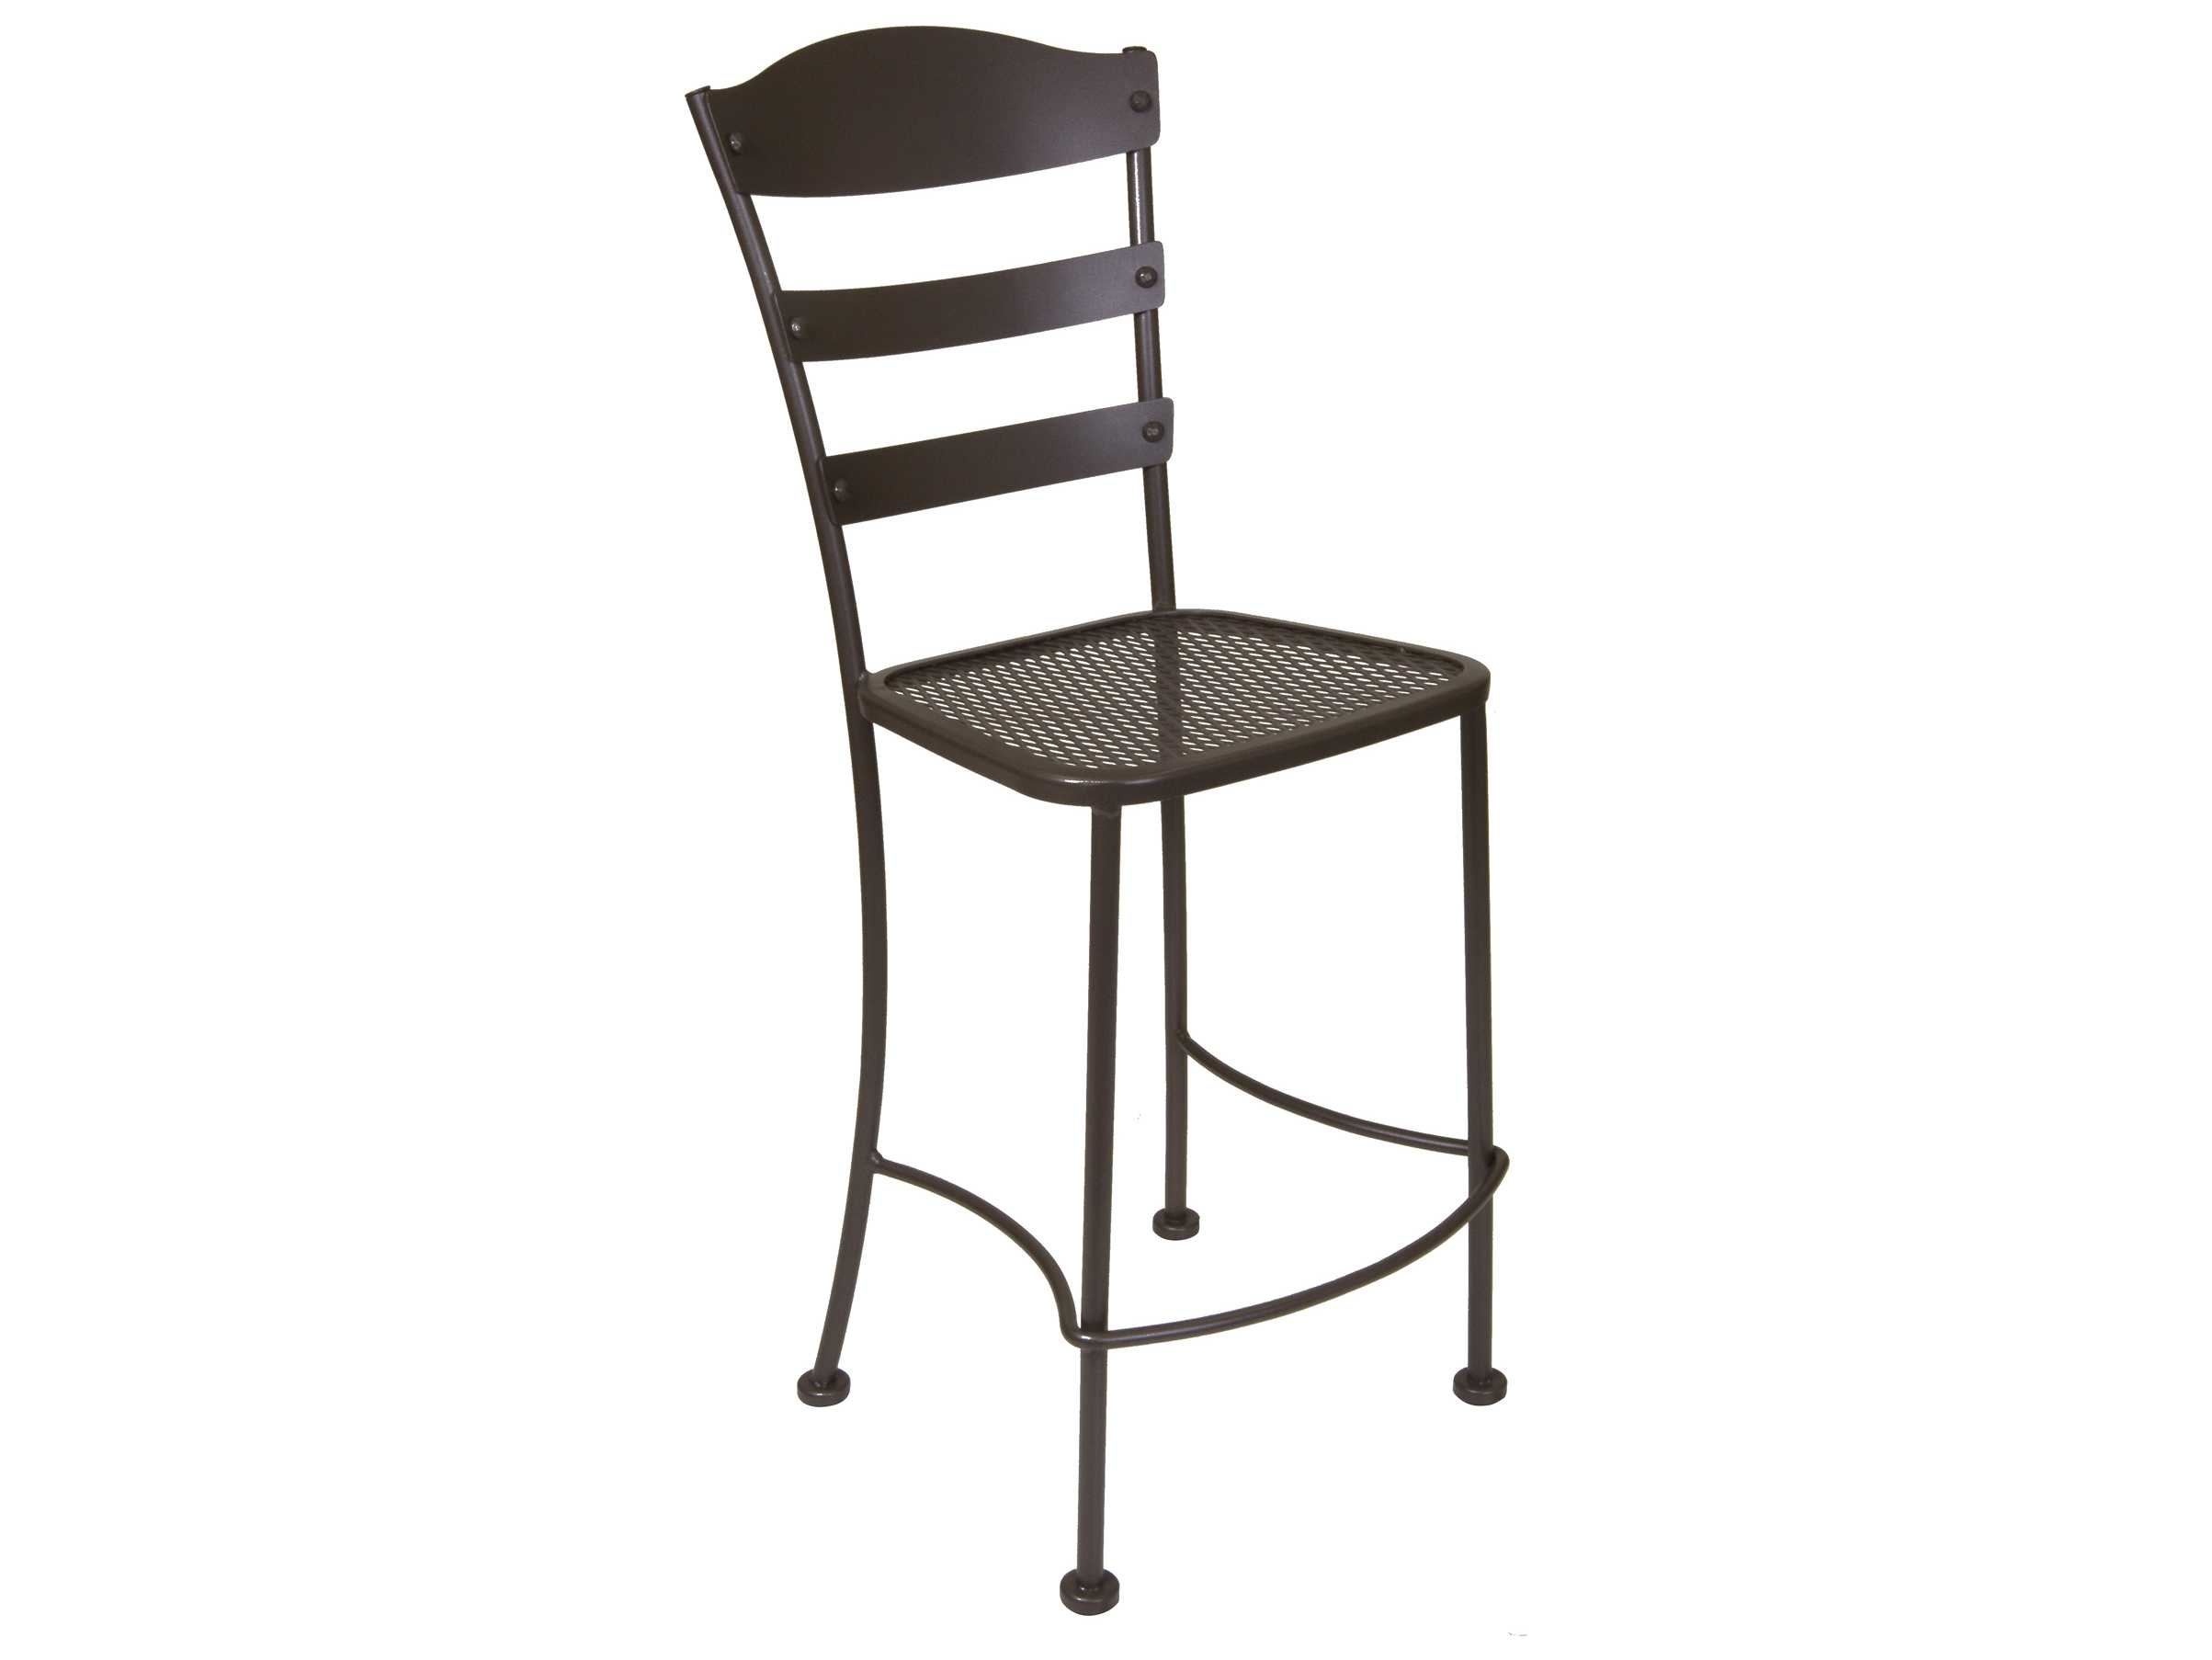 Ow Lee Chalet Wrought Iron Bar Stool 616 Bs